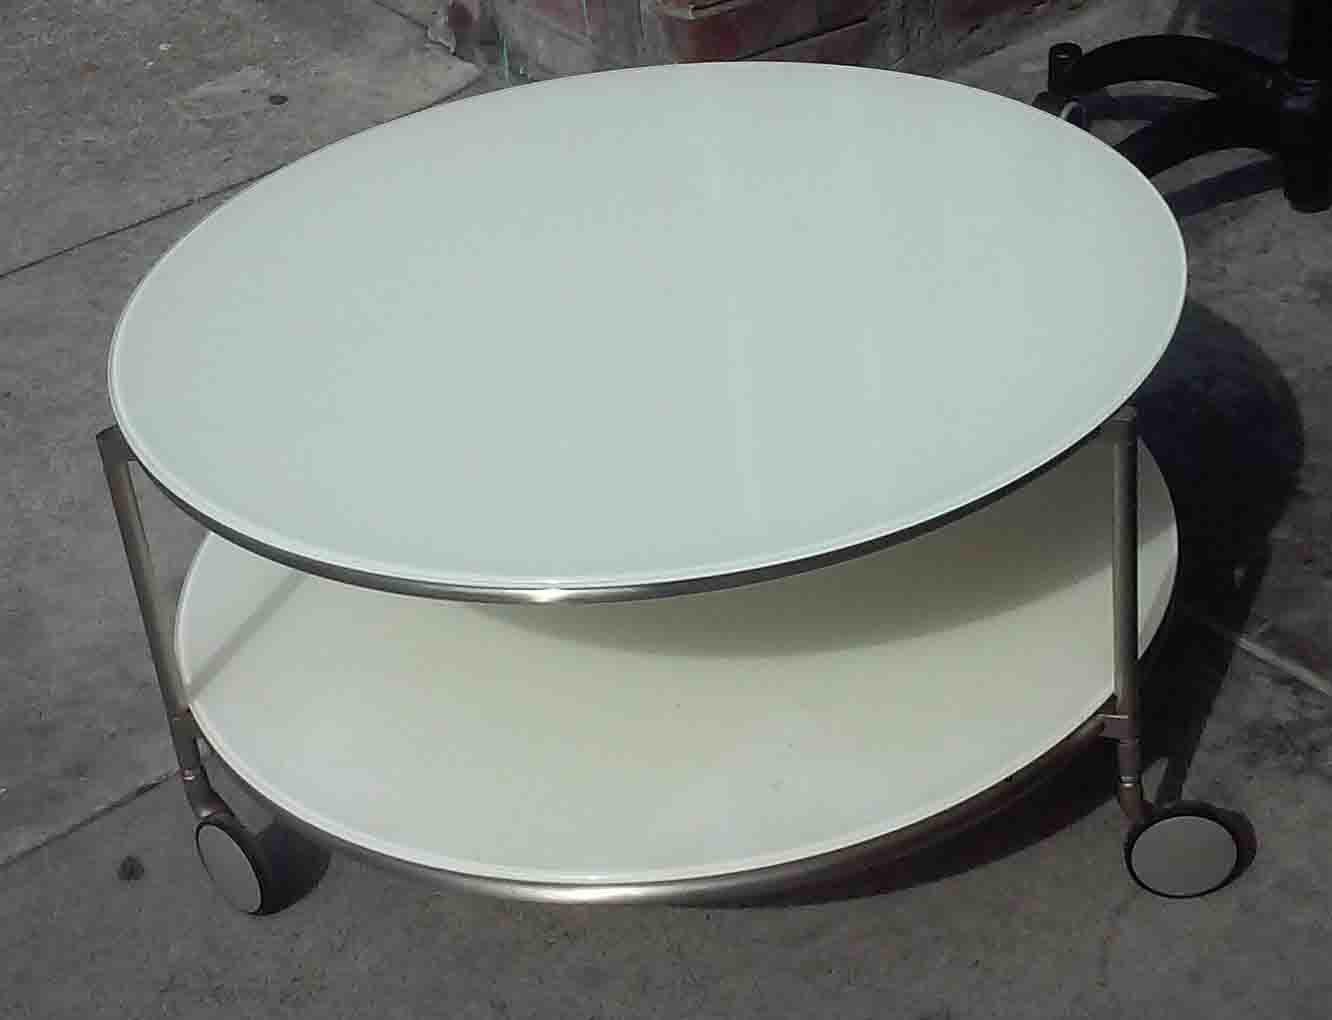 Uhuru Furniture Collectibles Sold Ikea Round White Coffee Table On Wheels 55